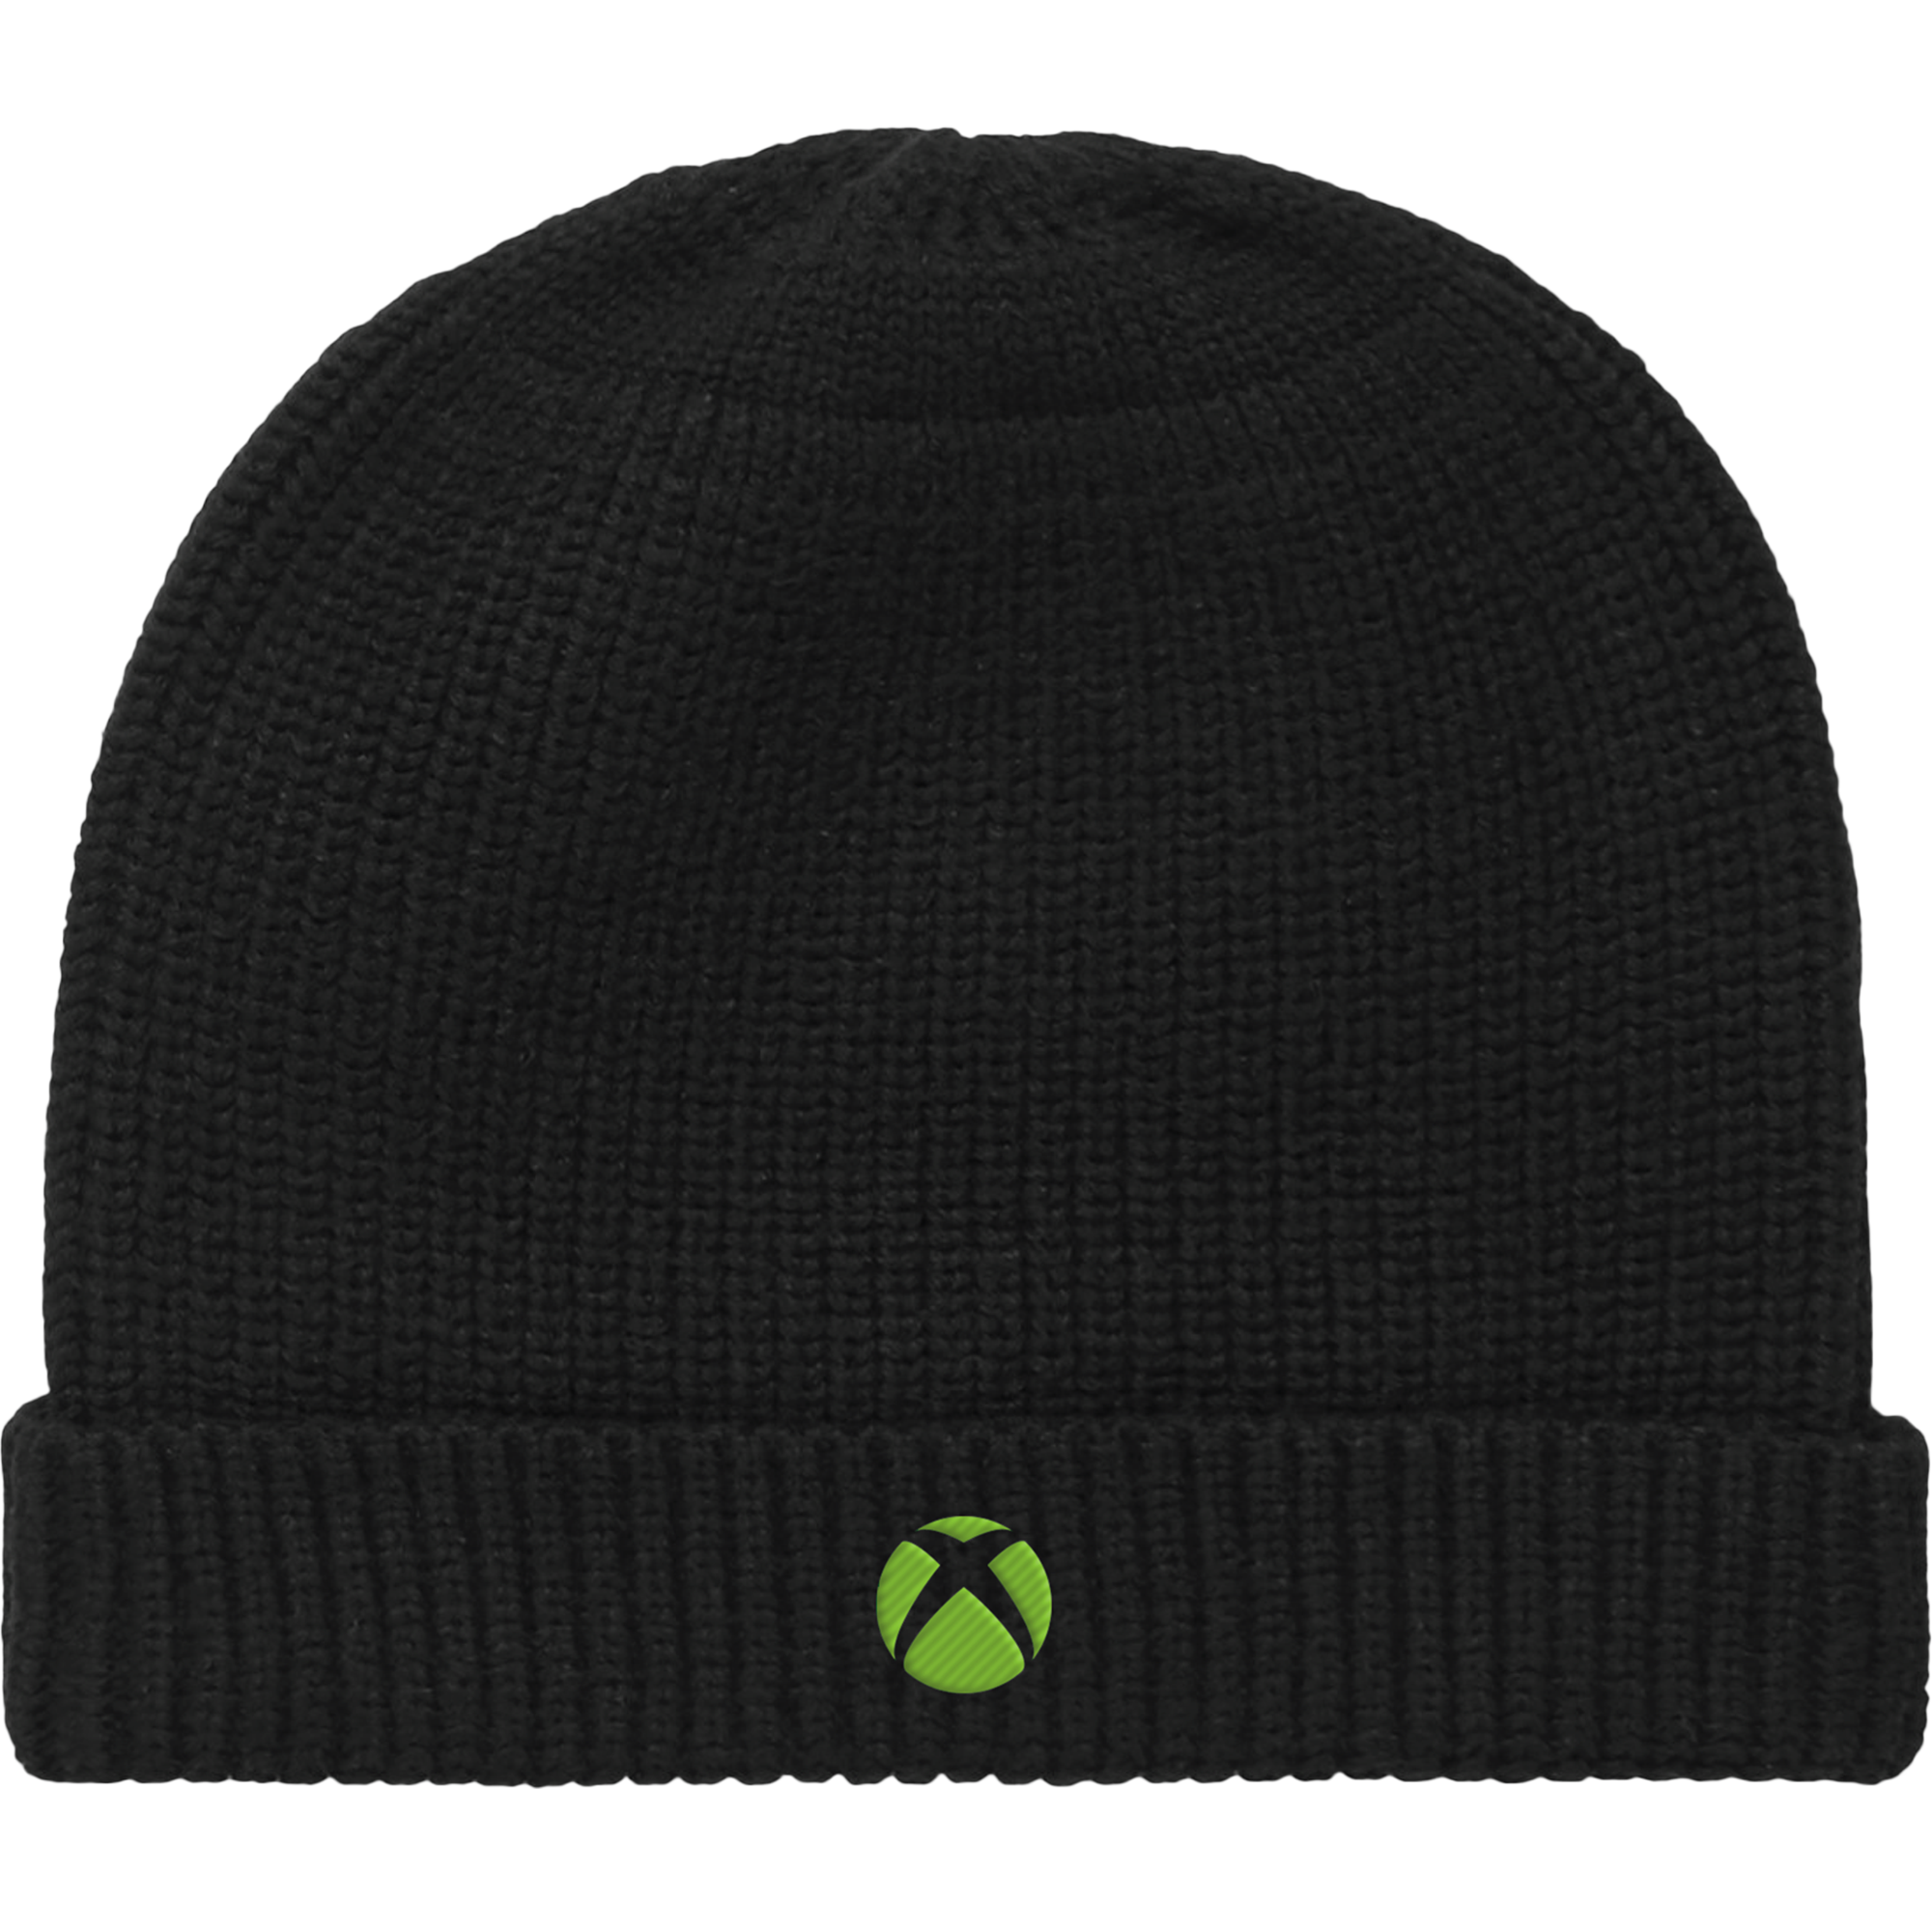 Xbox Green Sphere Knit Beanie for Xbox Gear Store